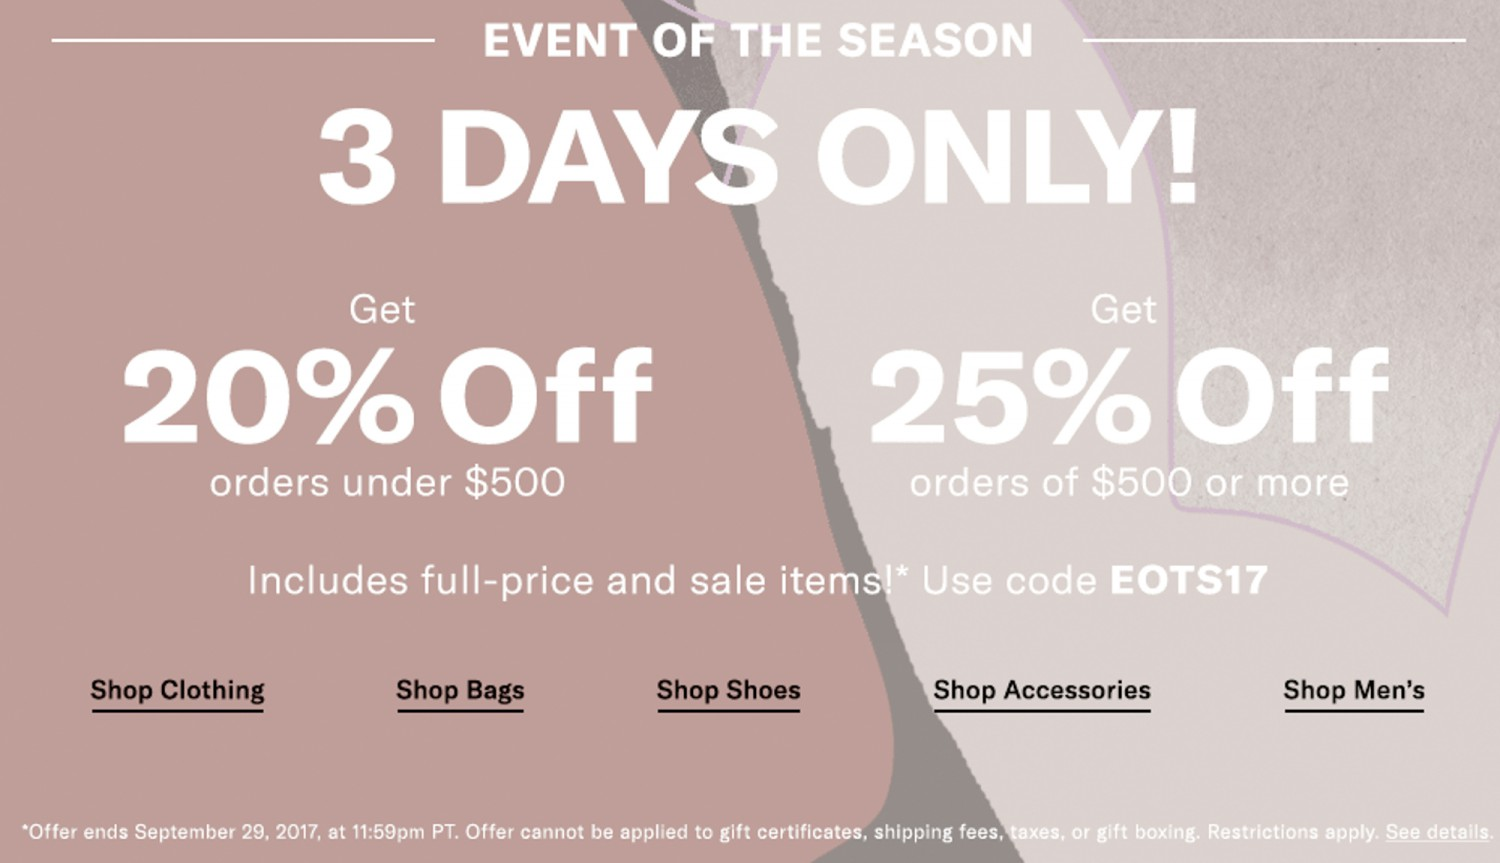 Shopbop Event of the Season